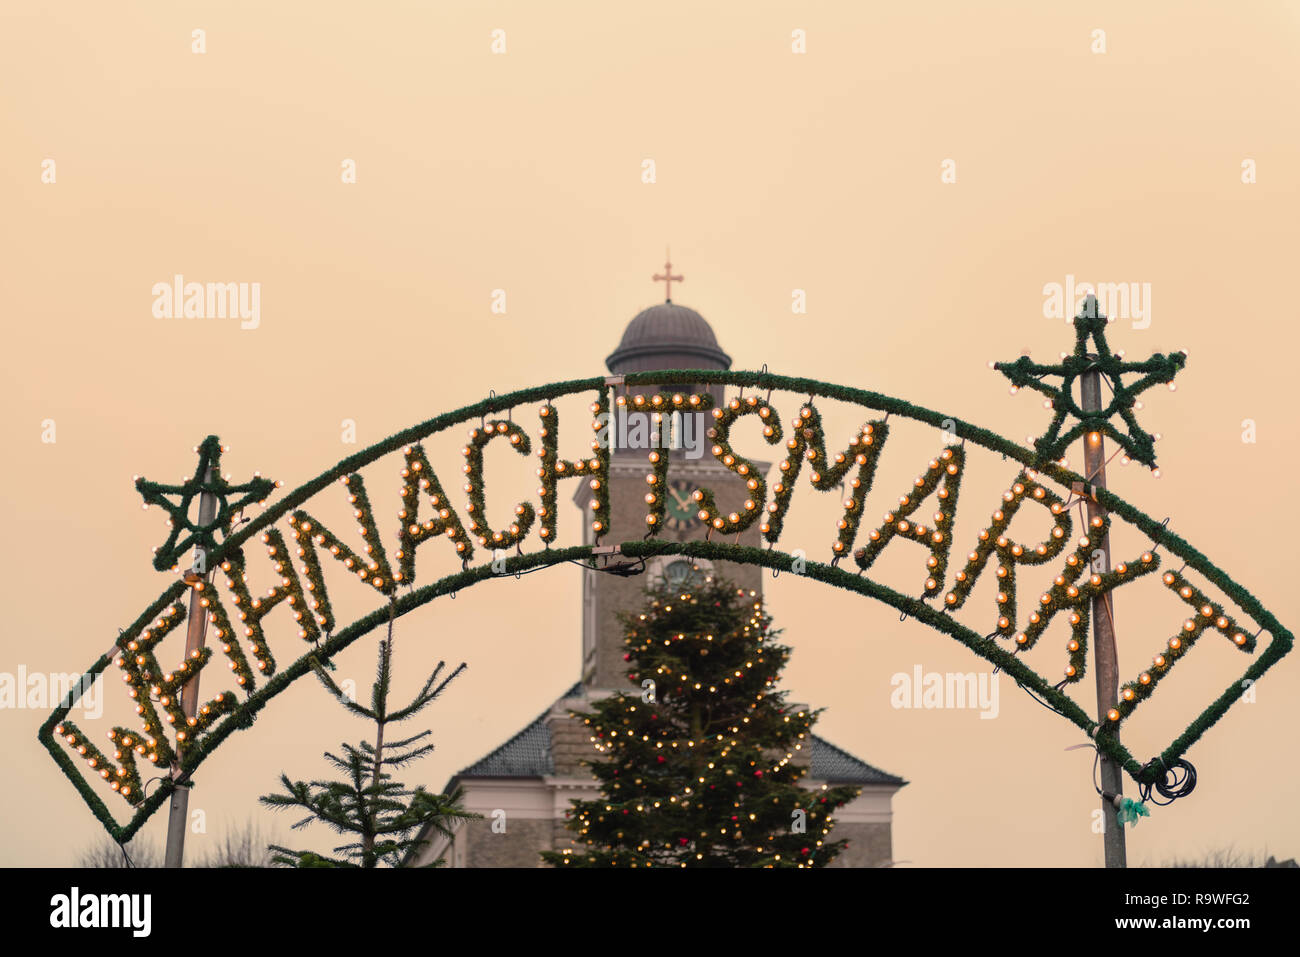 Weihnachtsmarkt or Christmas Market at the Stadtkirche, Husum, North Frisia, Schleswig-Holstein, North Germany, Europe - Stock Image